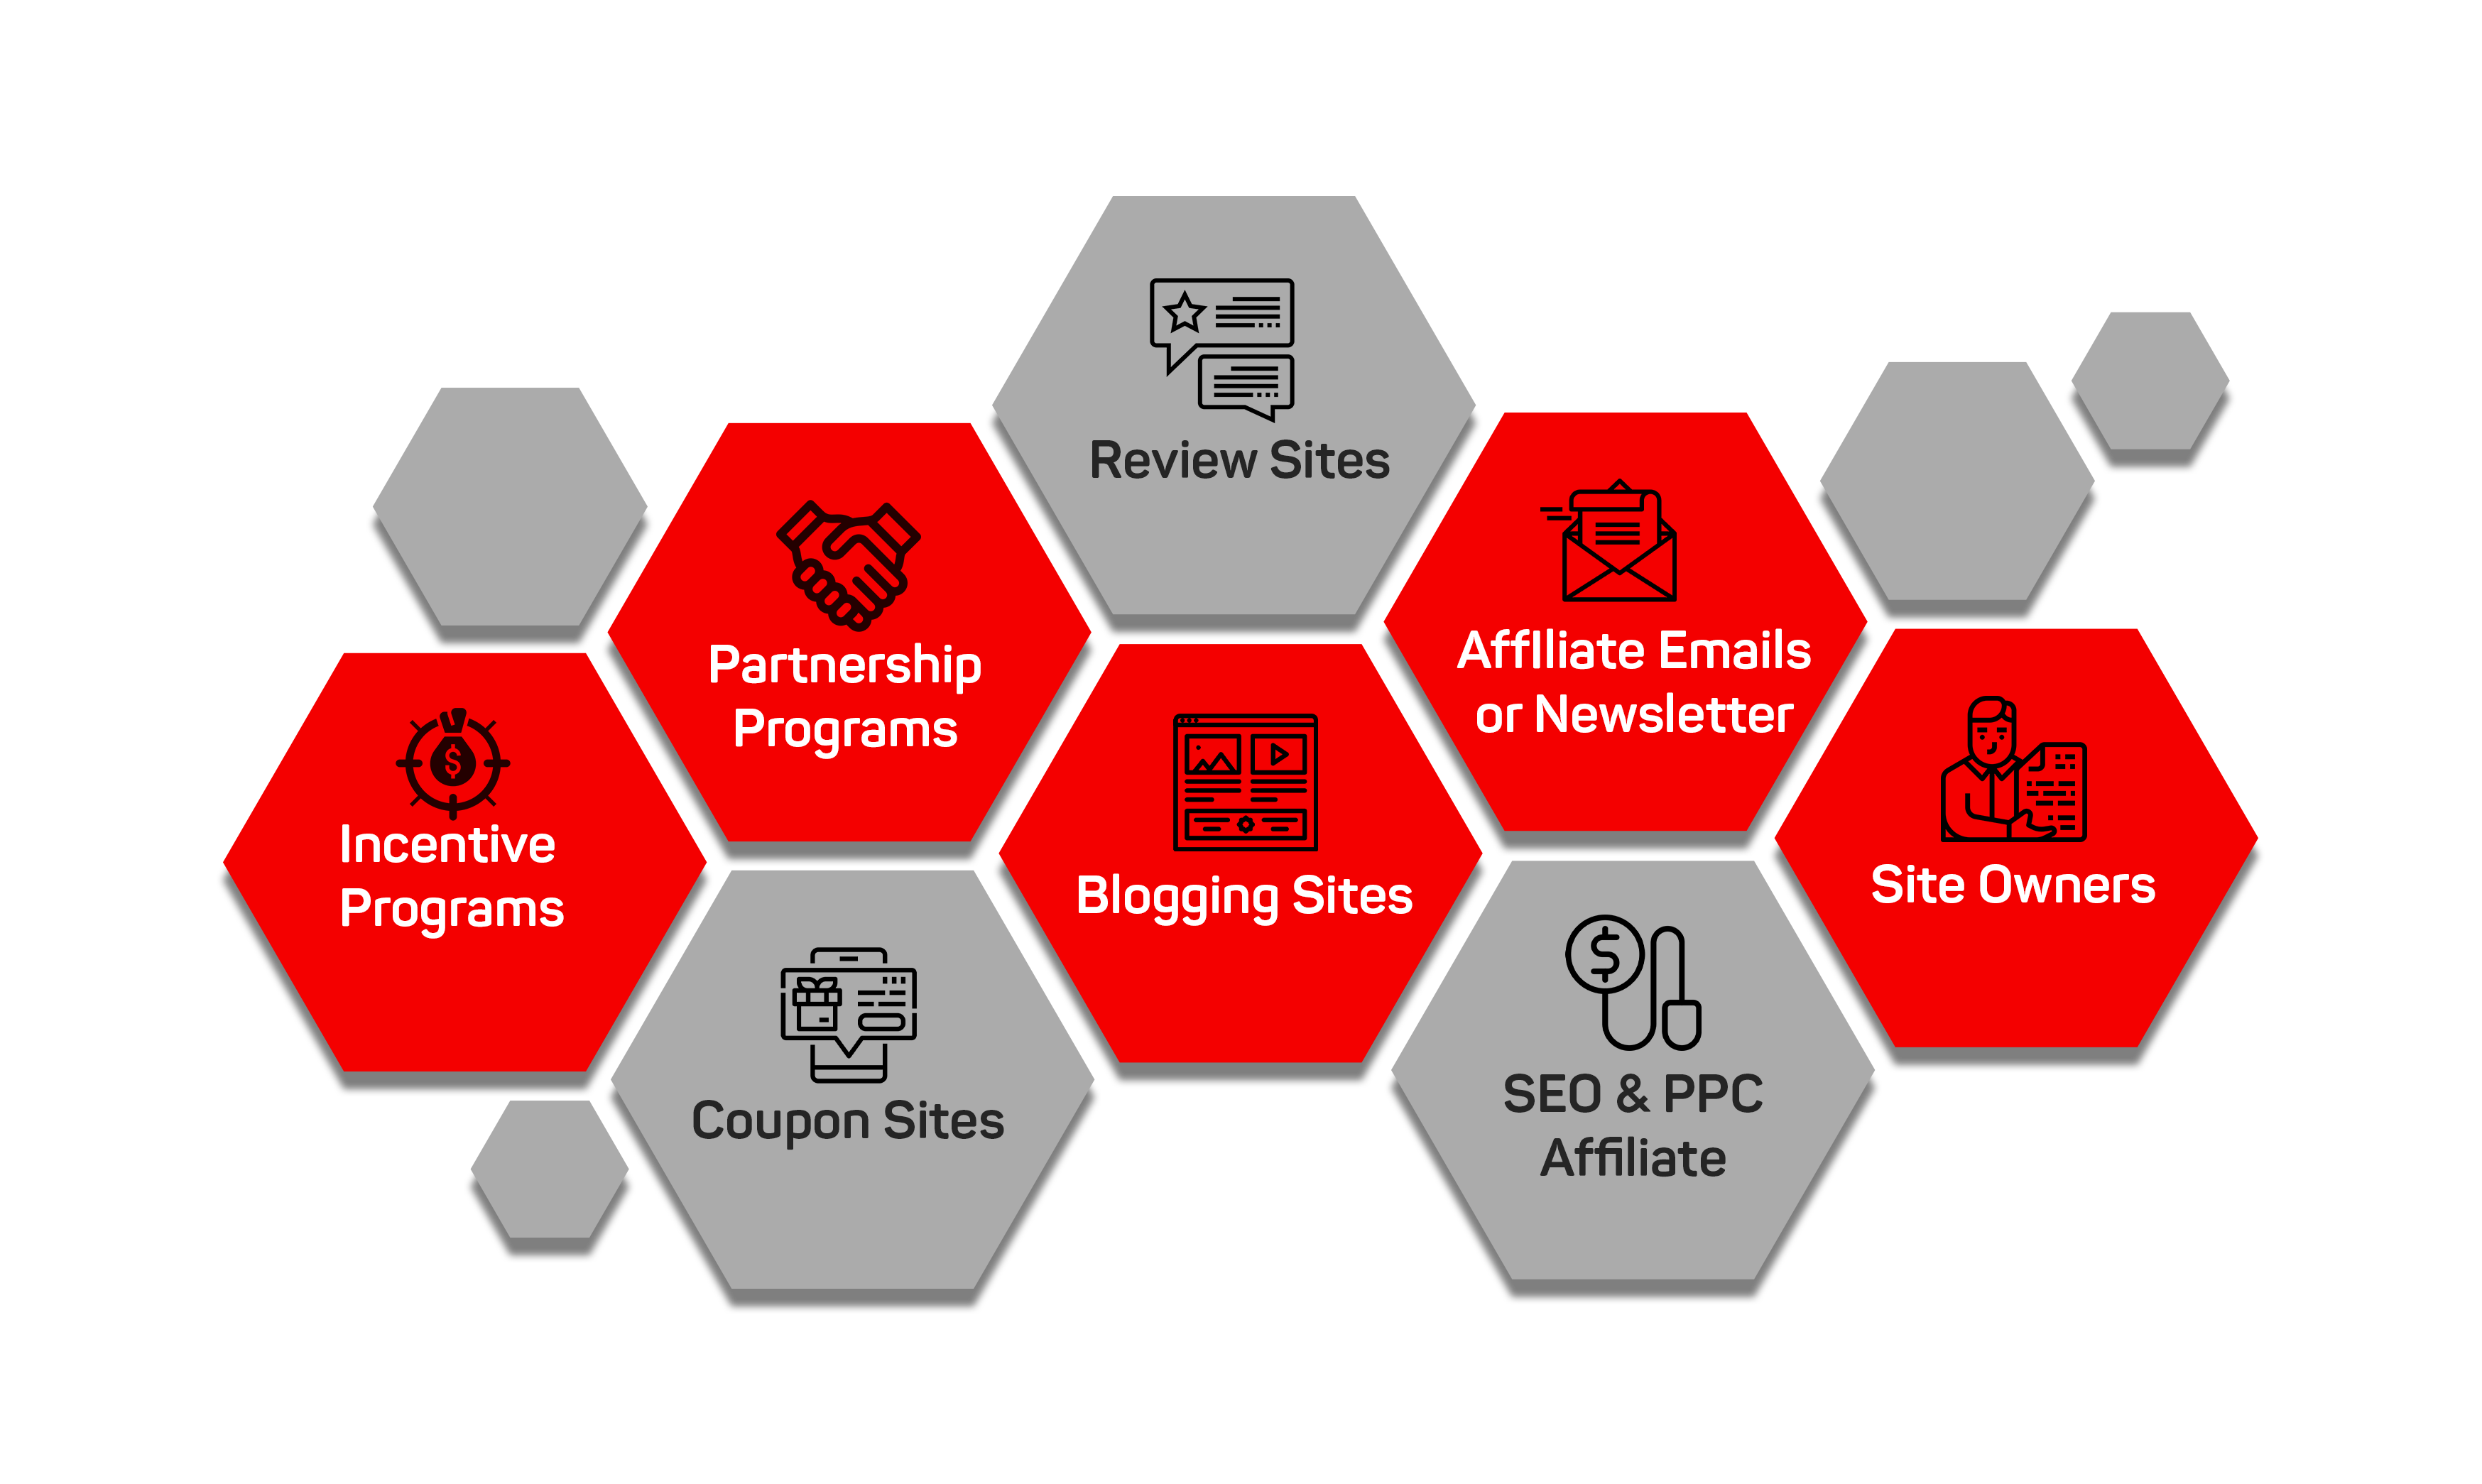 types of affiliate marketing strategies, what is affiliate marketing, affiliate marketing companies, amazon affiliate marketing, affiliate marketing meaning, how many types of affiliate marketing are there, best affiliate programs, top affiliate marketers, https://iventurebd.com